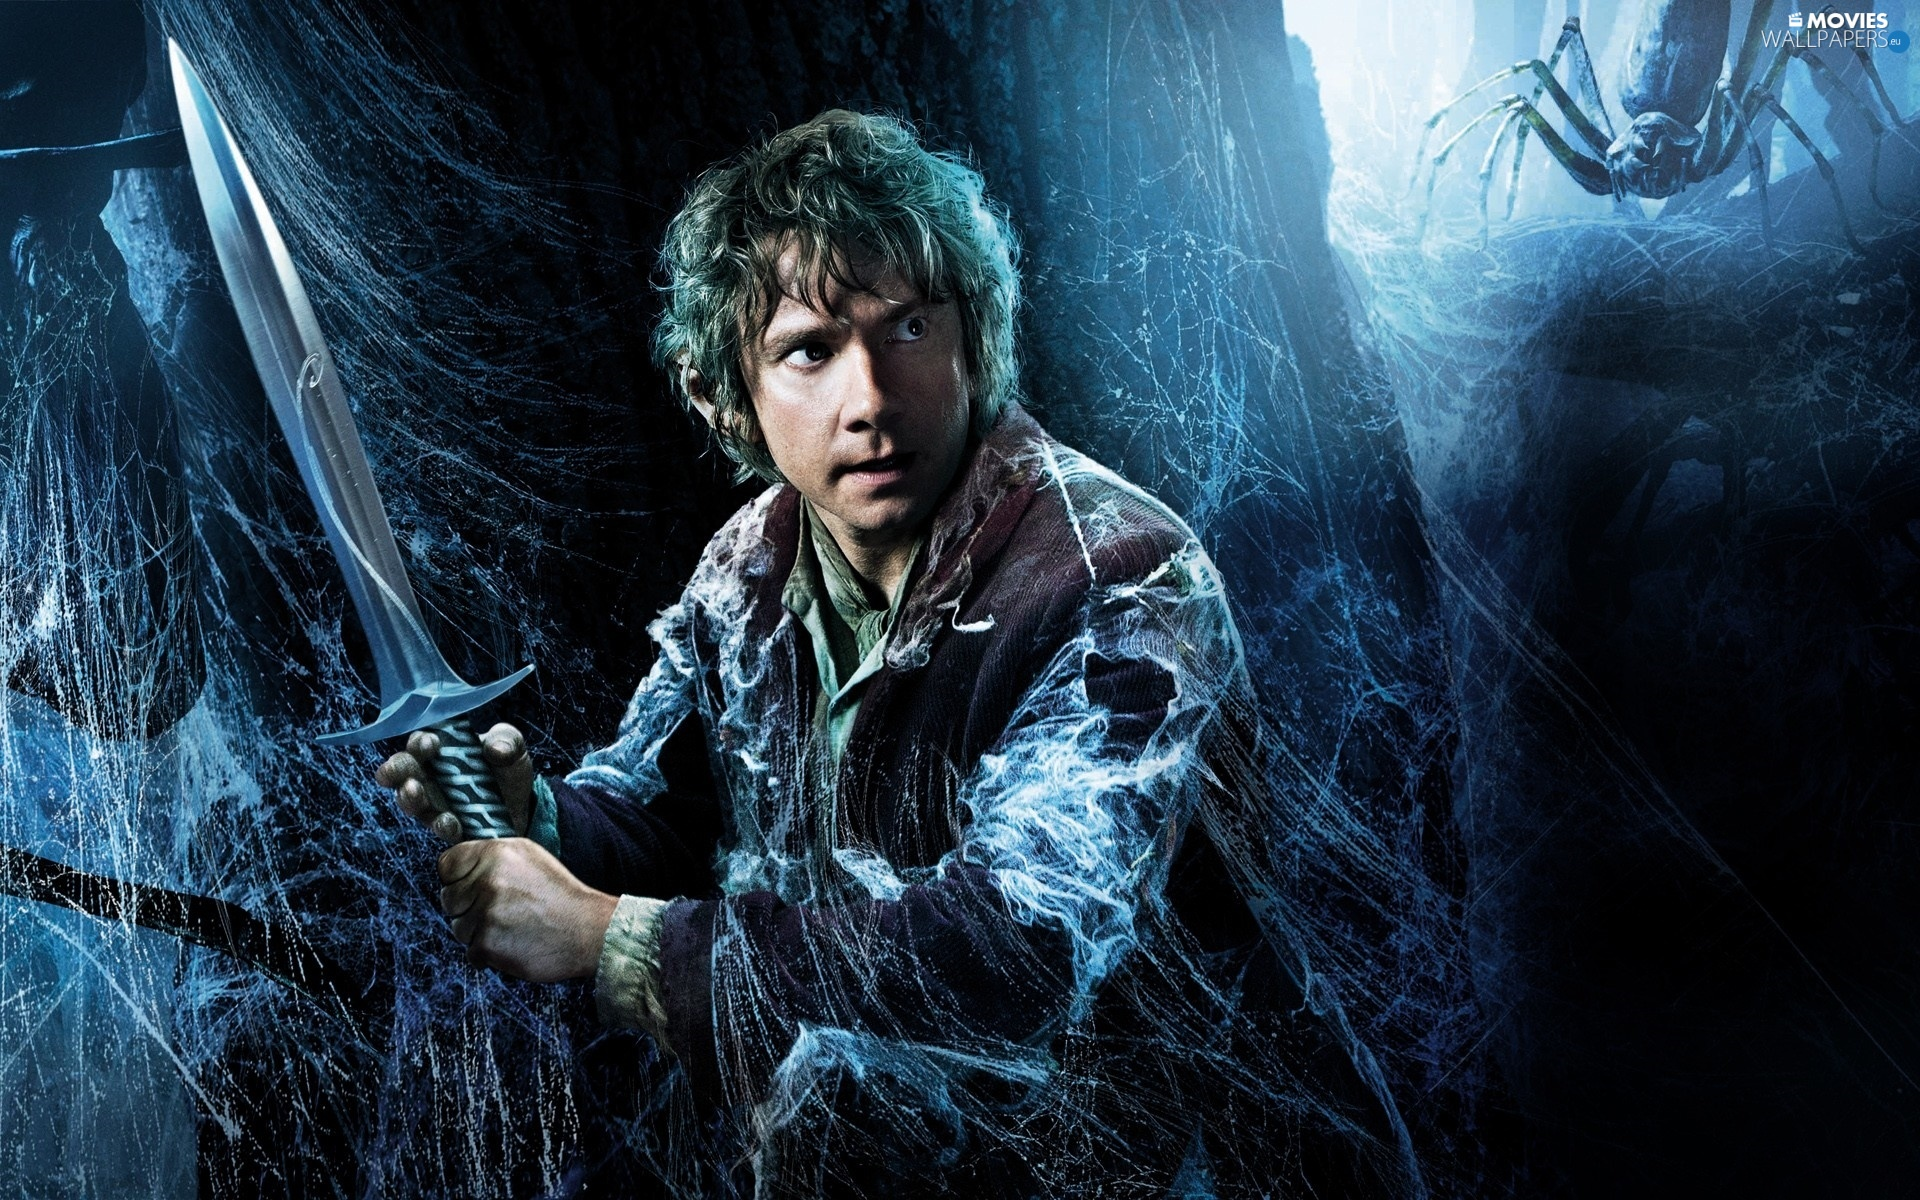 Martin Freeman, Hobbit The Desolation of Smaug, sword, Web, Bilbo Baggins, The Hobbit: The Desolation of Smaug